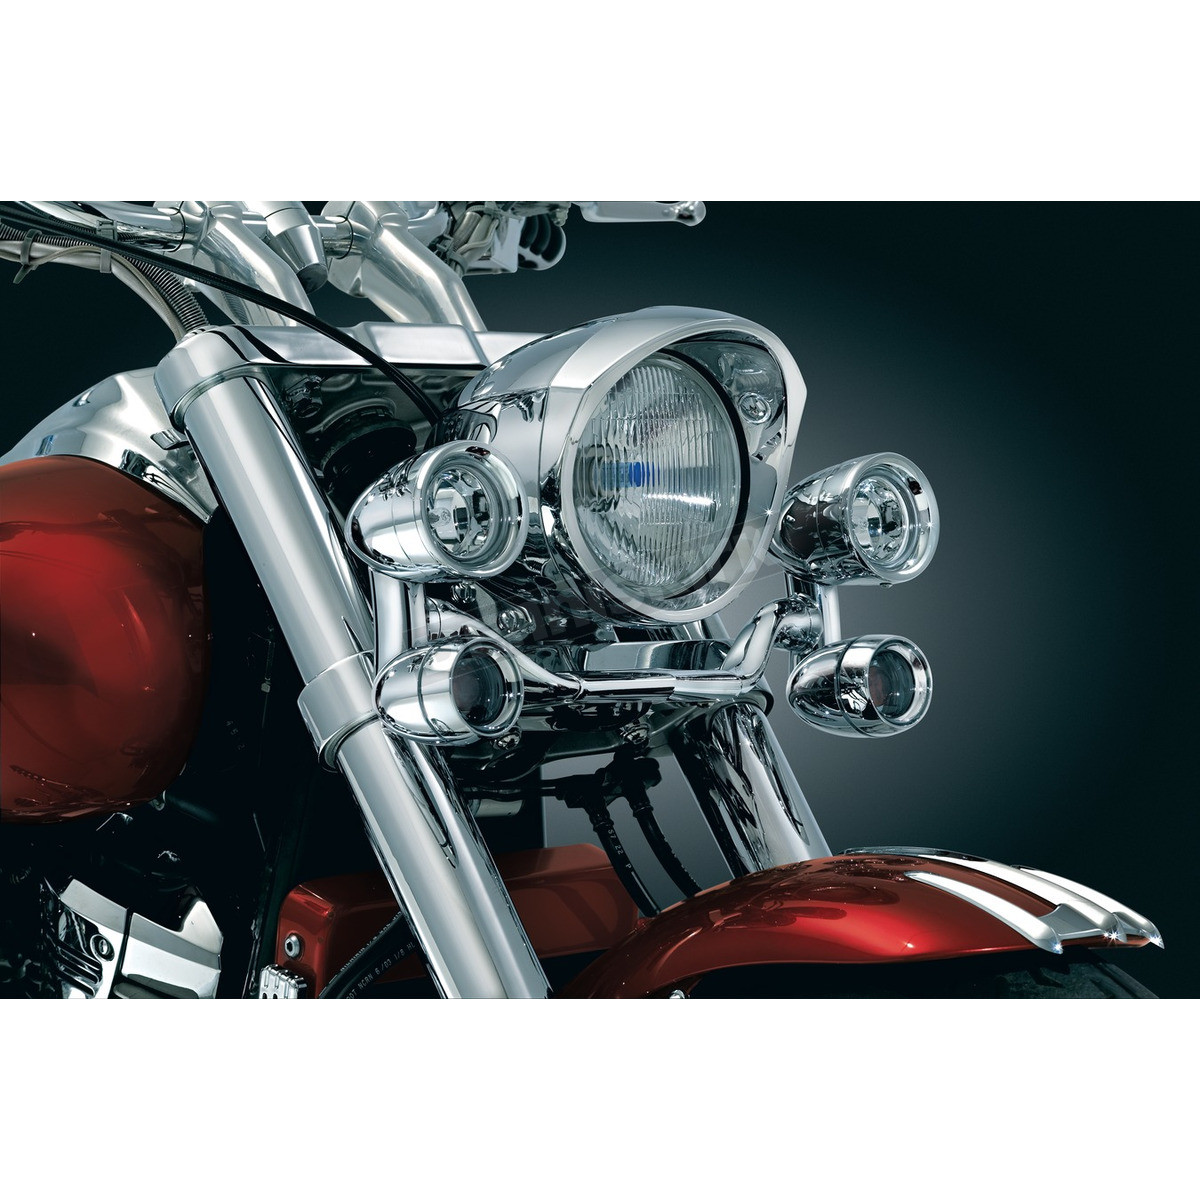 Harley Driving Light Wiring Harness on driving lights electrical connection, driving light license plate bracket, driving light mounting bracket, driving light switch, driving light bulbs, driving light wiring kit, driving mode wiring-diagram,